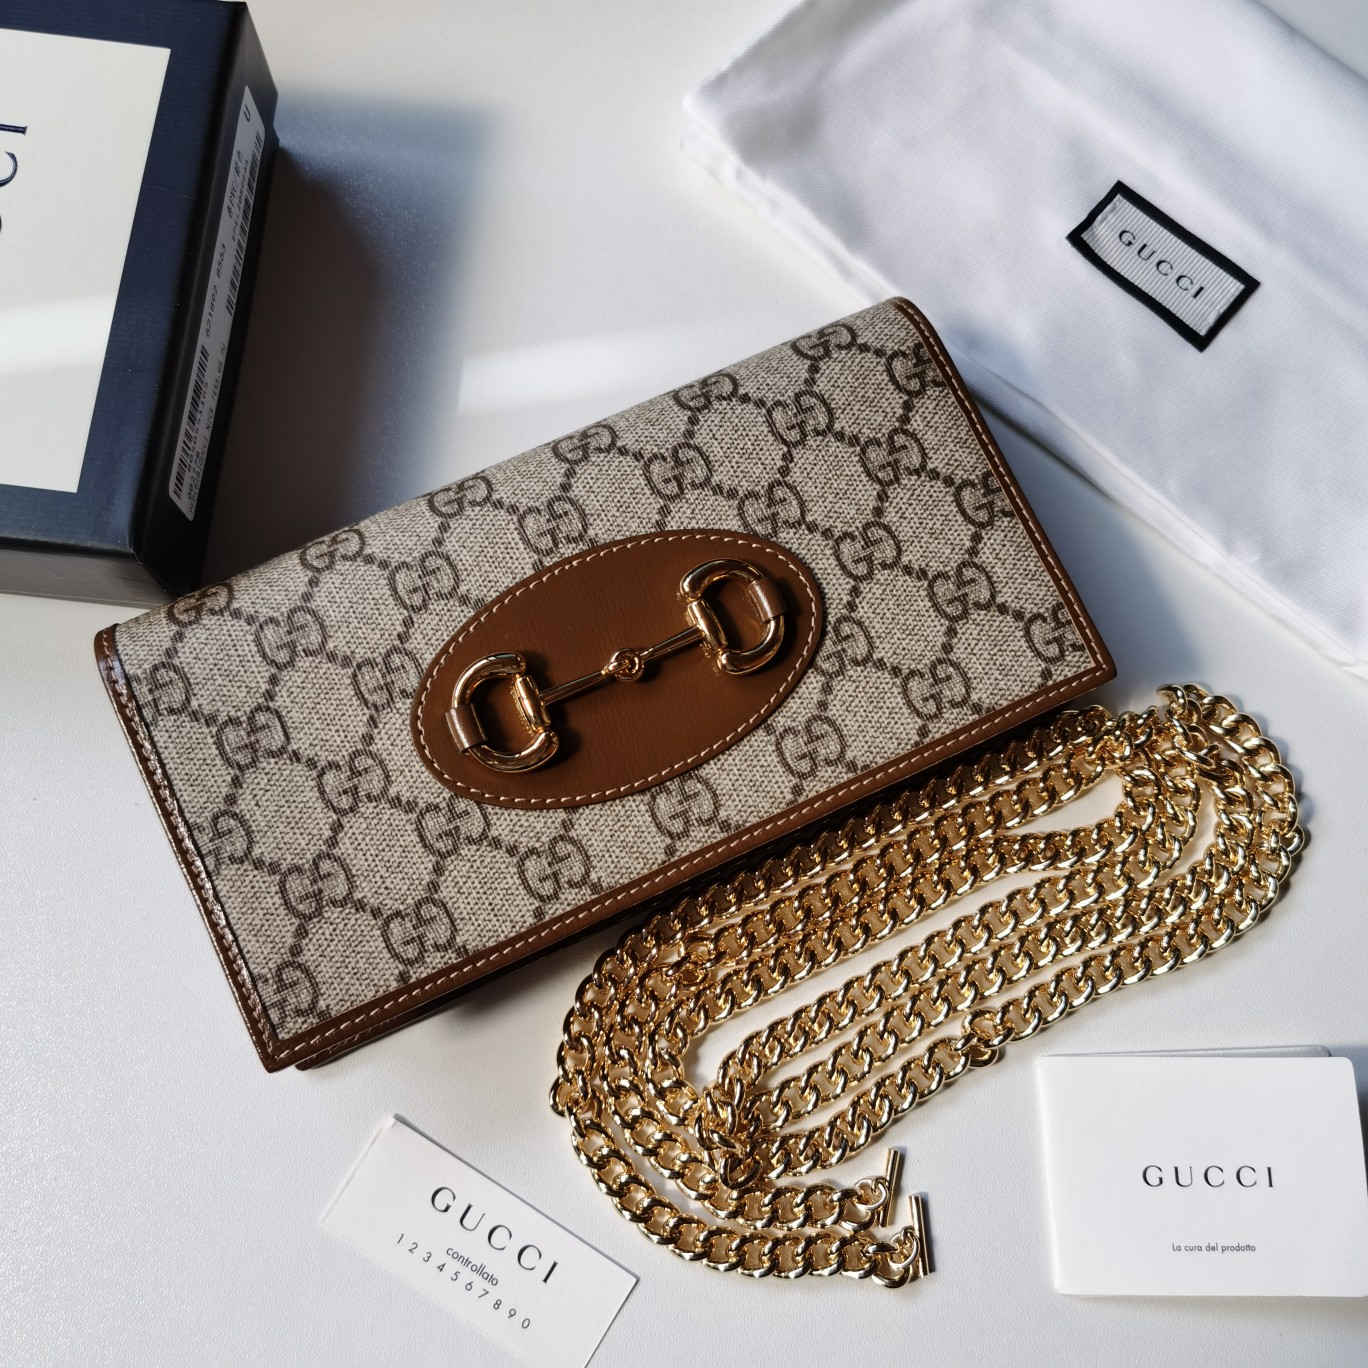 Copy Gucci 621892 Women Gucci Horsebit 1955 Wallet with Chain Brown Leather Details